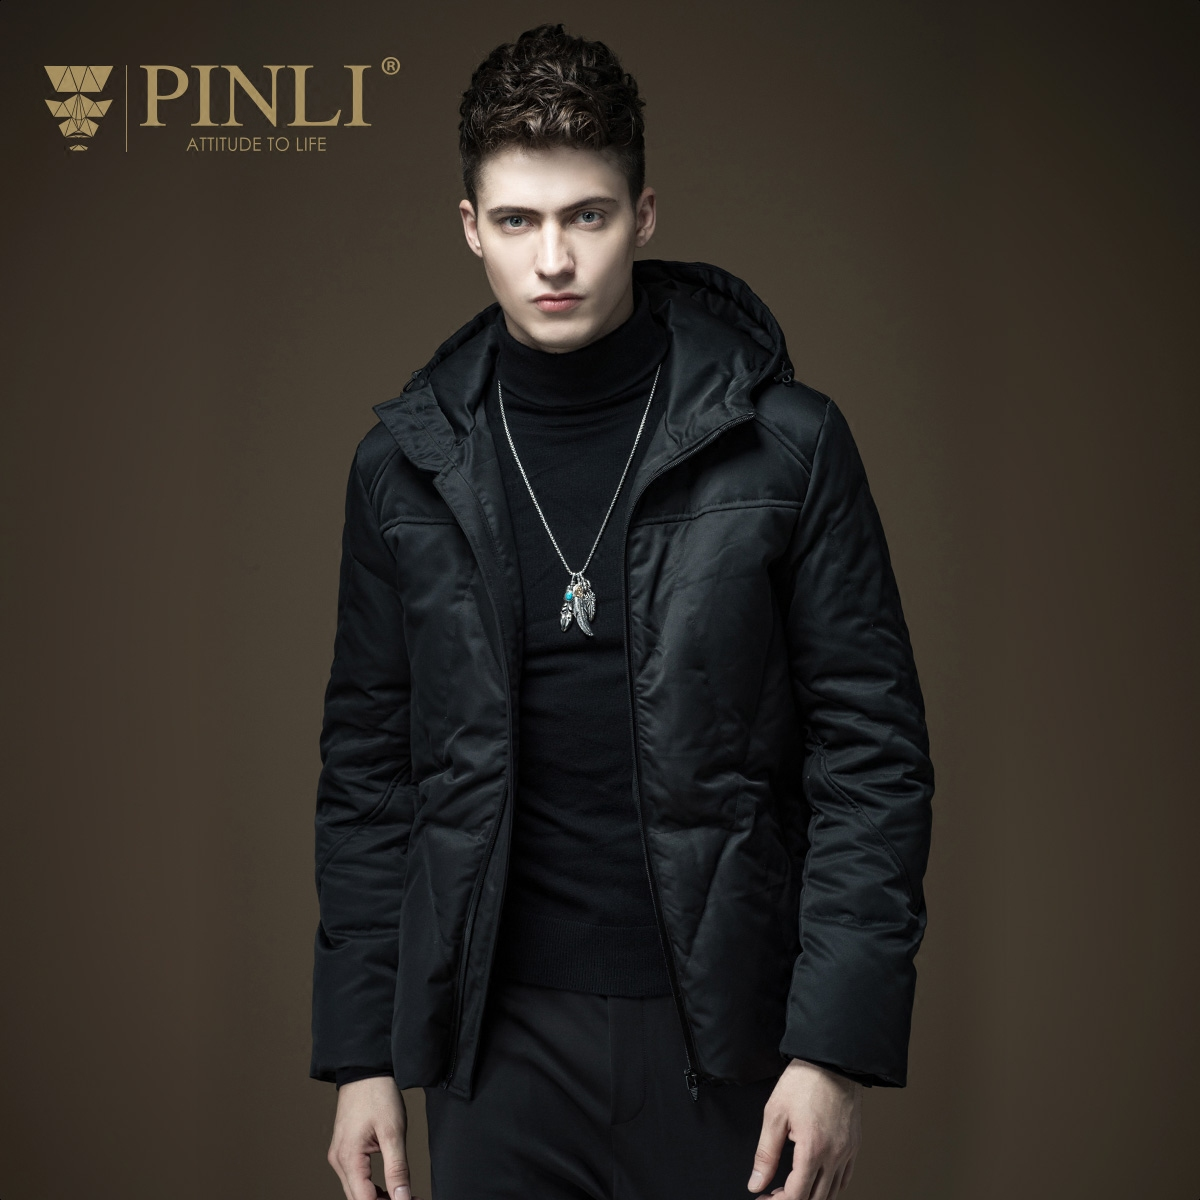 Winter Jacket Men Real Standard Pinli 2016 Autumn New Arrival Male Short Design Thermal With A Hood Coat Outerwear D163608010